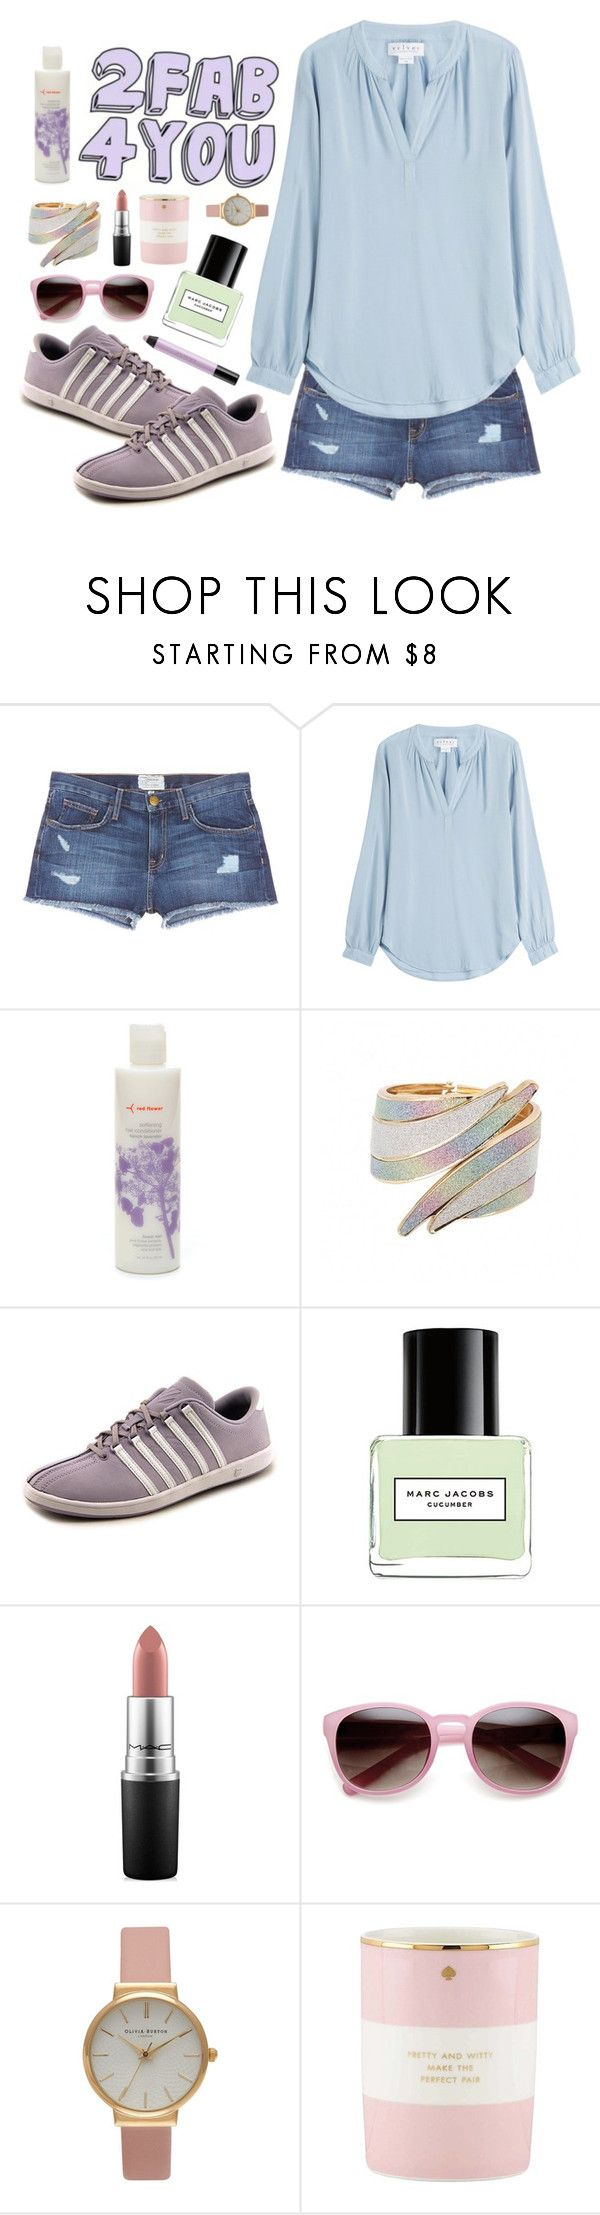 Takashi murakami sun flowers and contemporary art uniqlog -  Fab In Pastels By Queenofchill Liked On Polyvore Featuring Current Elliott